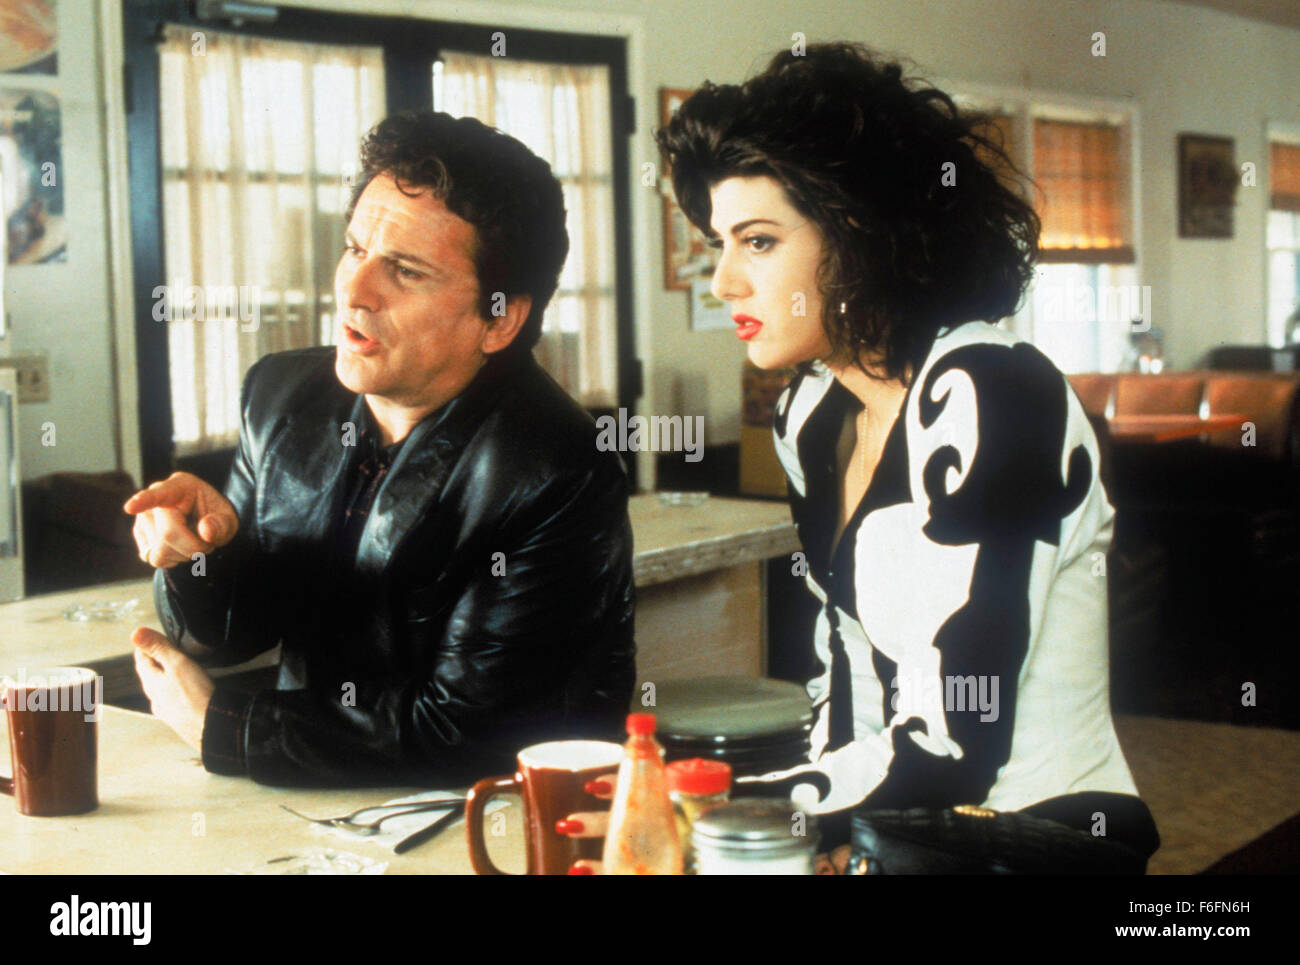 Mar 13, 1992; Los Angeles, CA, USA; Actor JOE PESCI stars as Vincent Gambini and in her Oscar winning role, actress - Stock Image